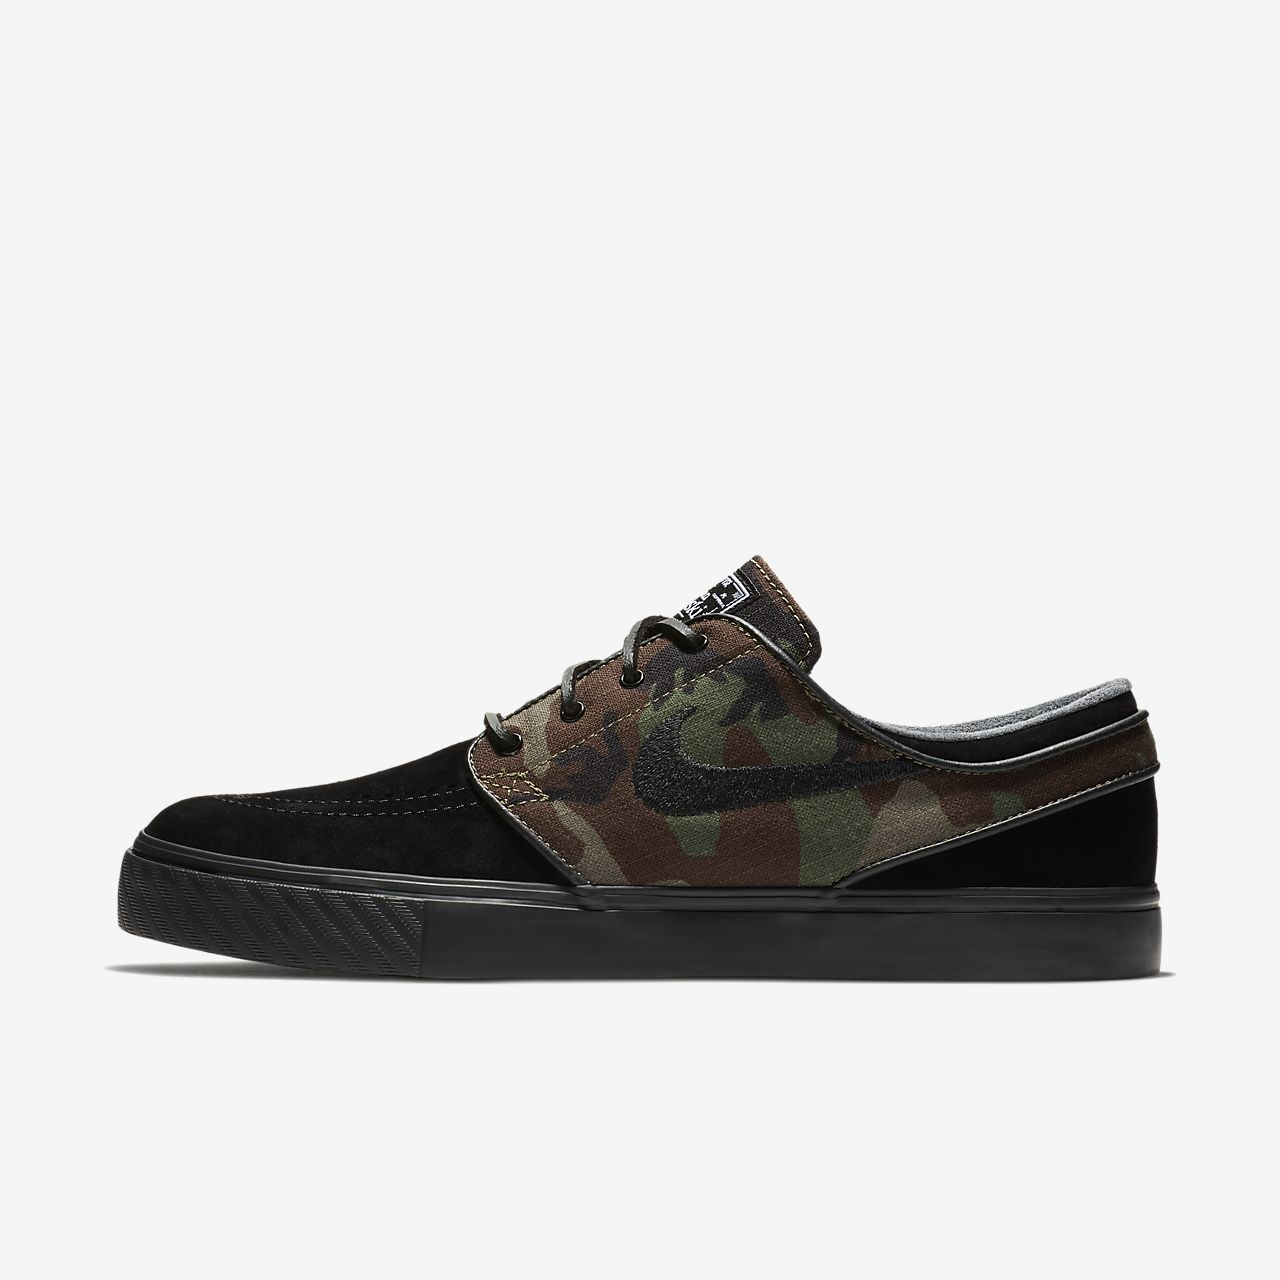 Nike SB Zoom Stefan Janoski Men's Skateboarding Shoes Blue/Brown jG6328Q